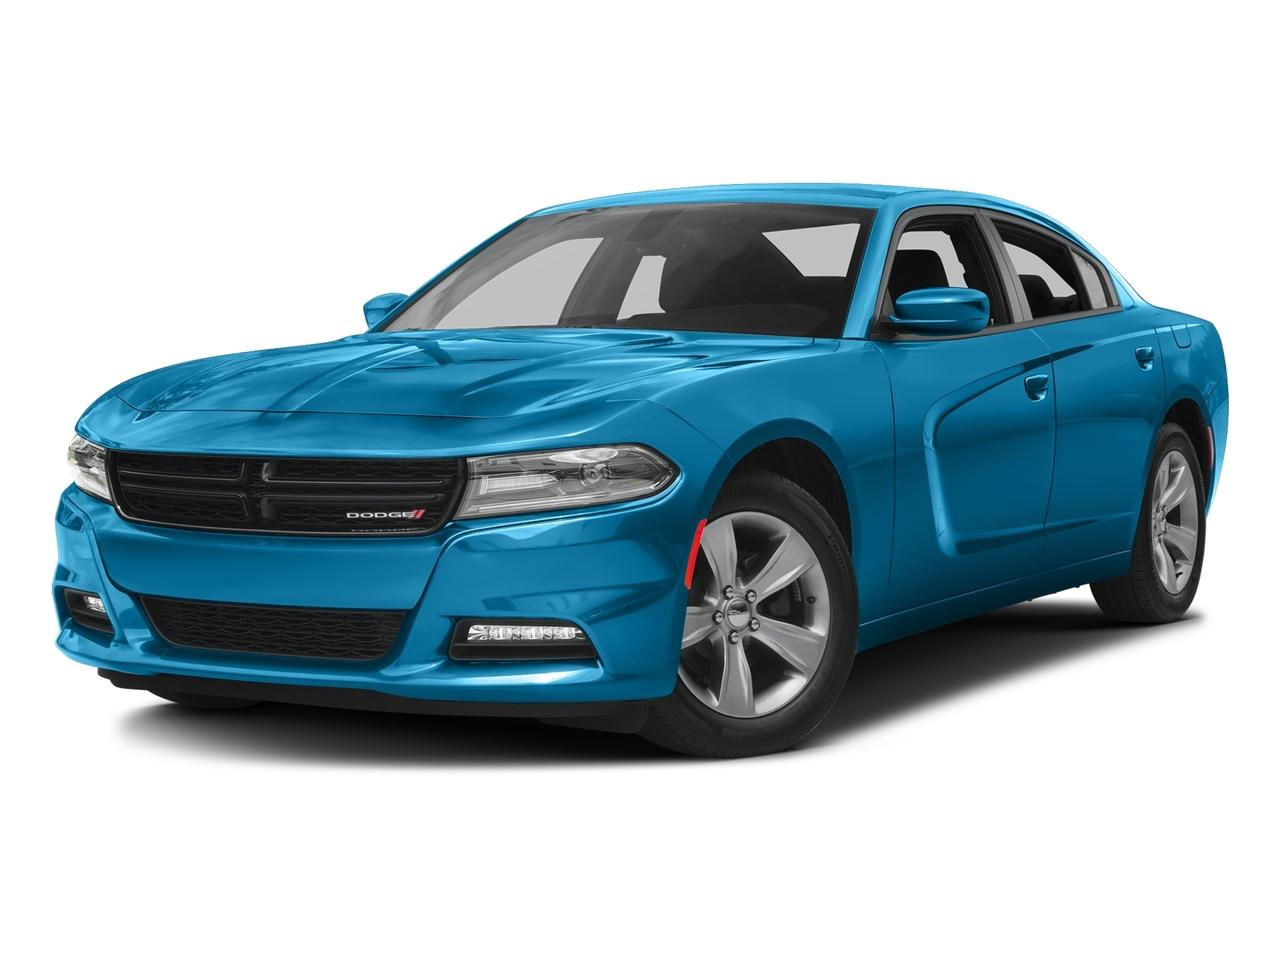 2016 Dodge Charger Vehicle Photo in Midland, TX 79703